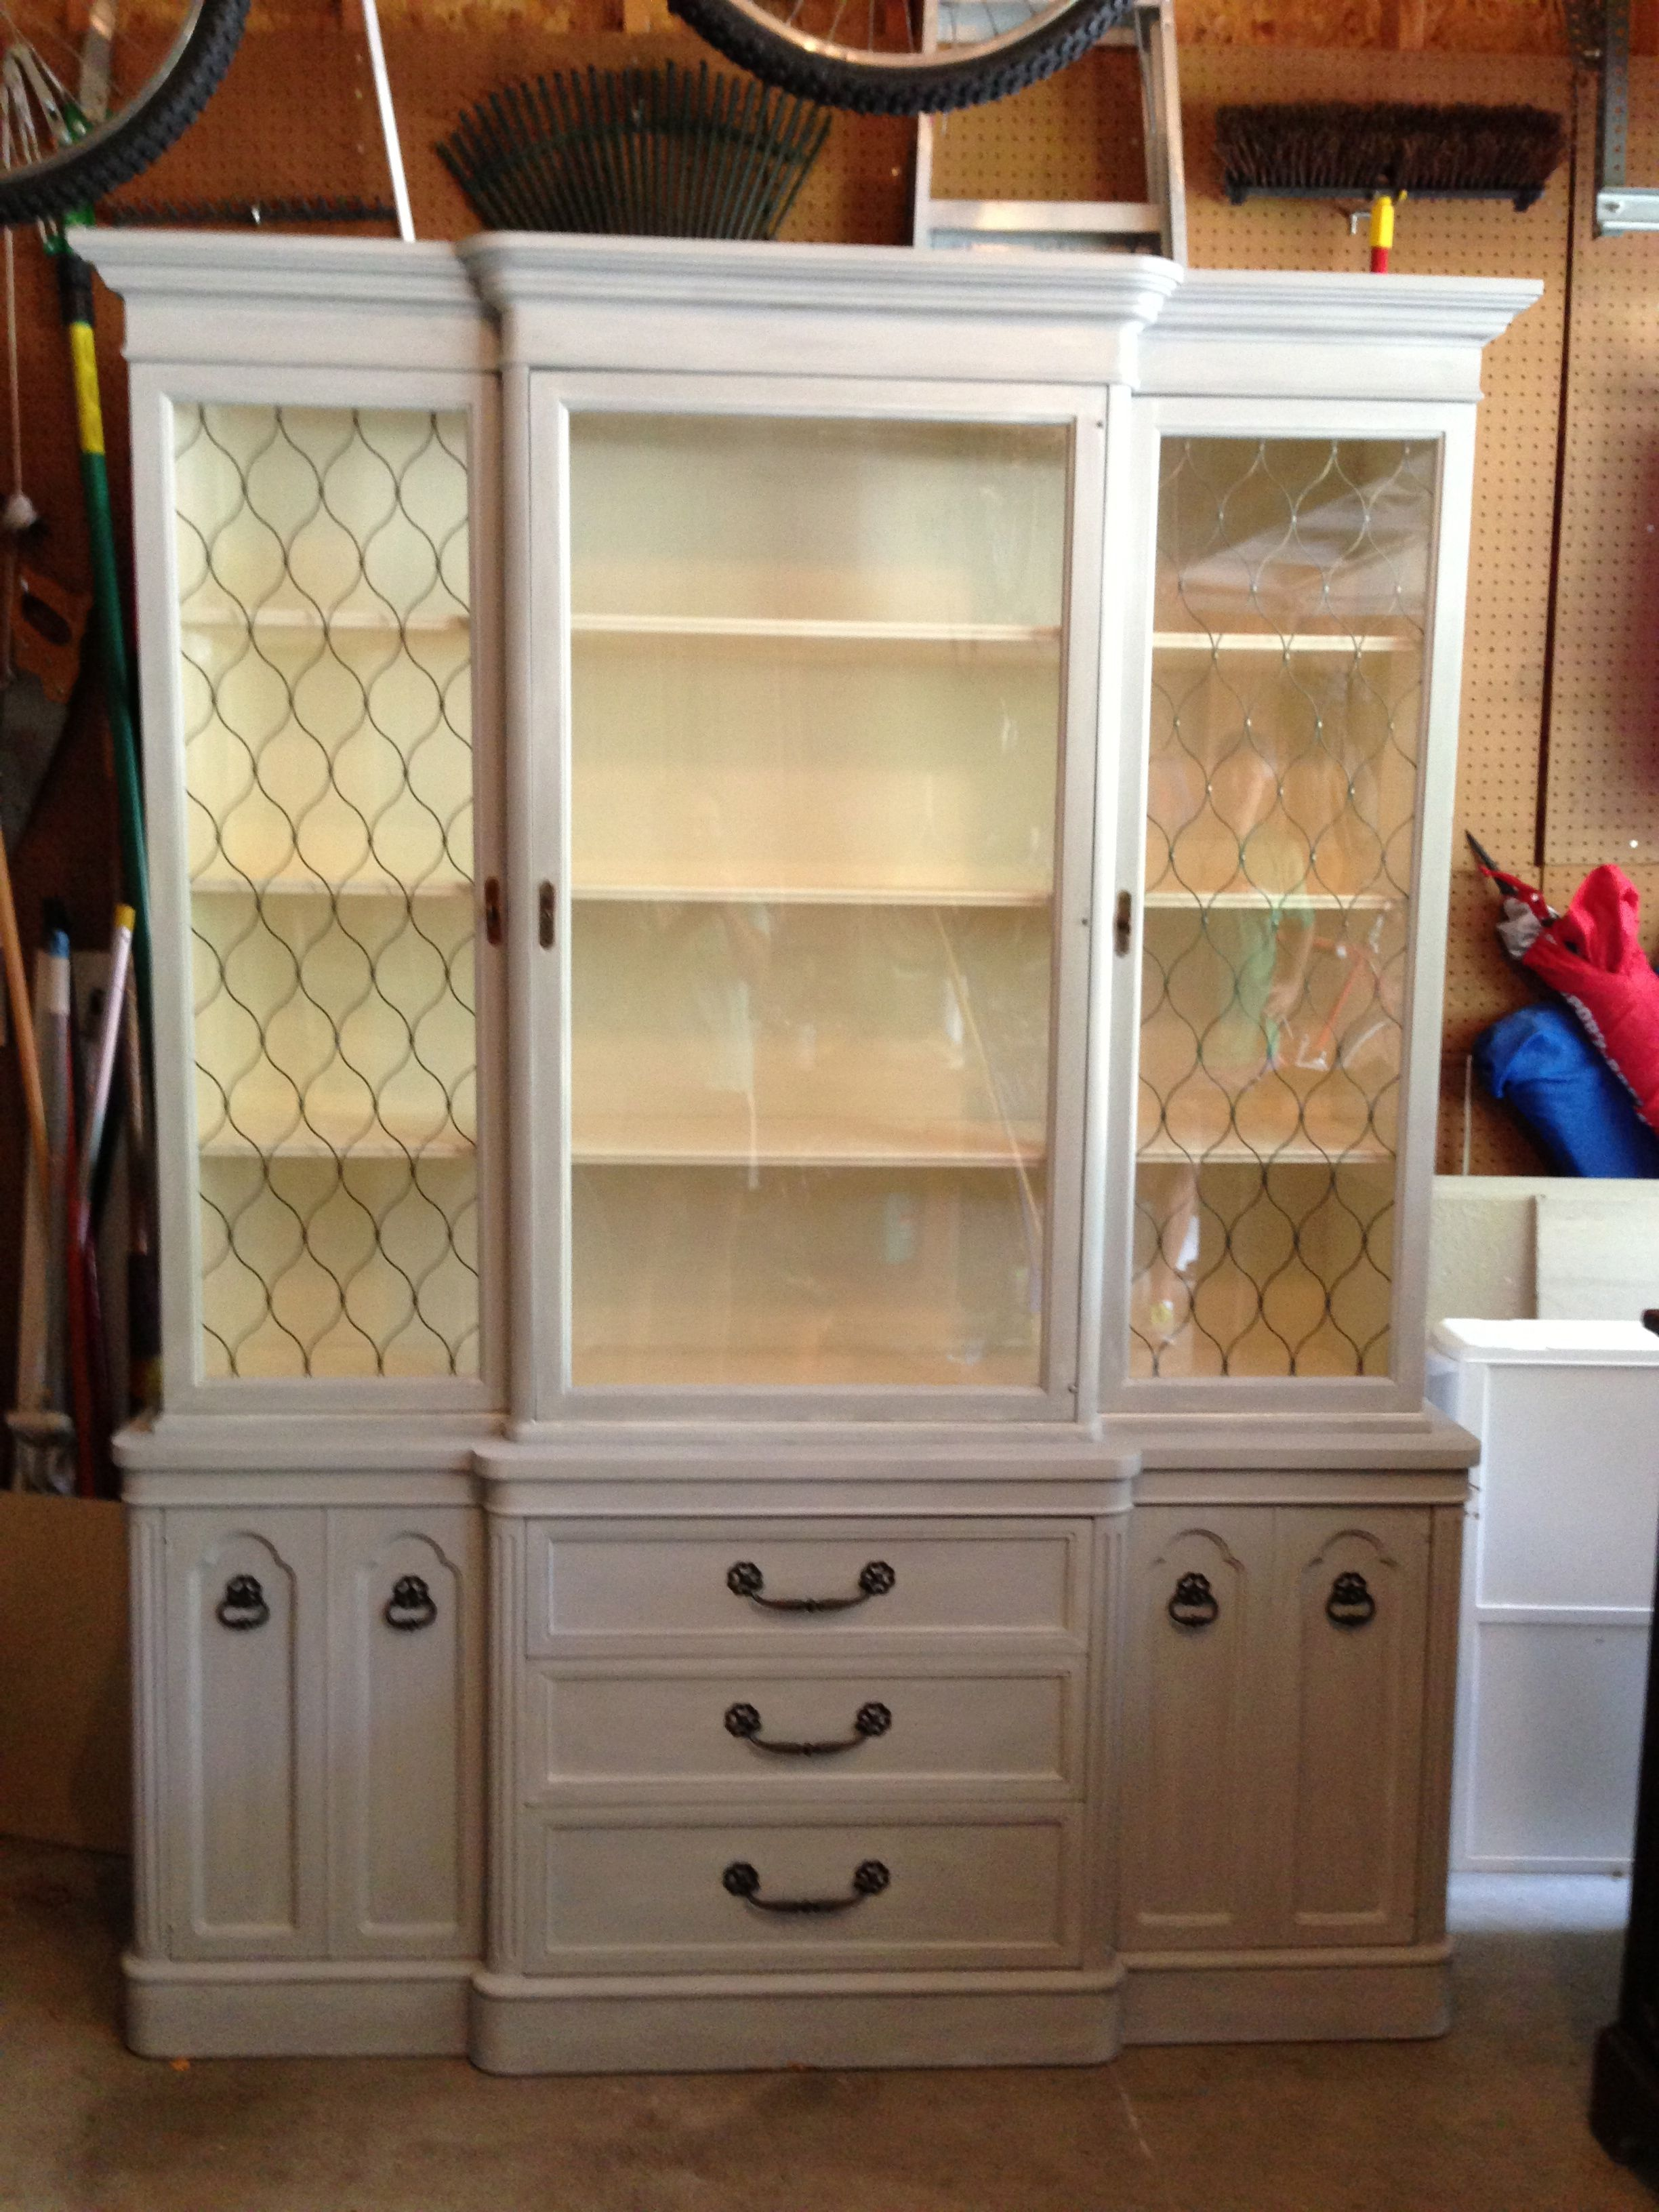 China Cabinet refinished in Paris Gray and Old White For sale